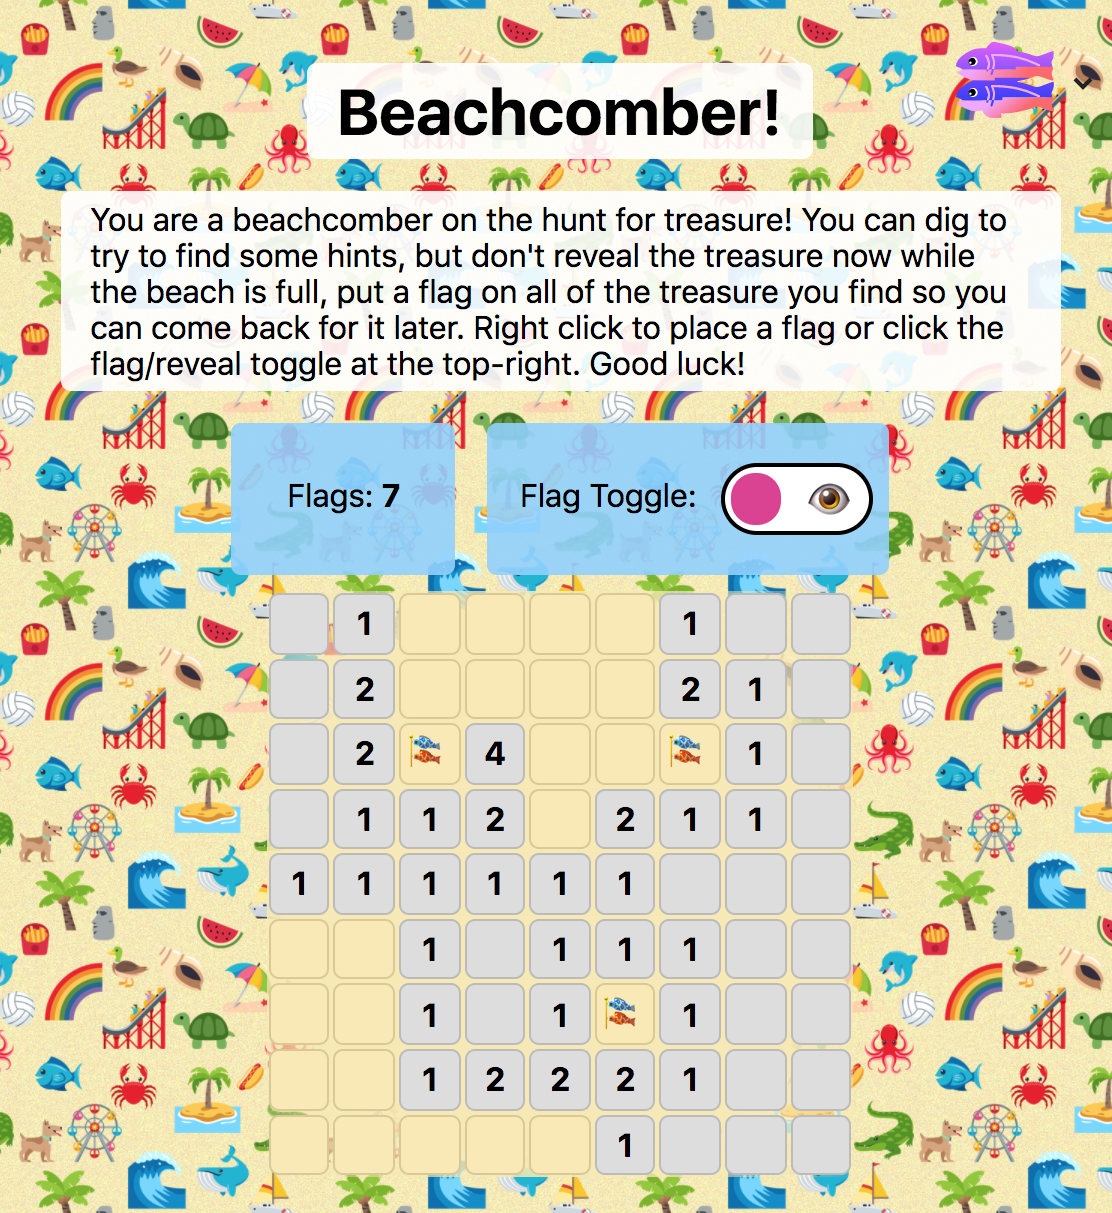 A screenshot of the game